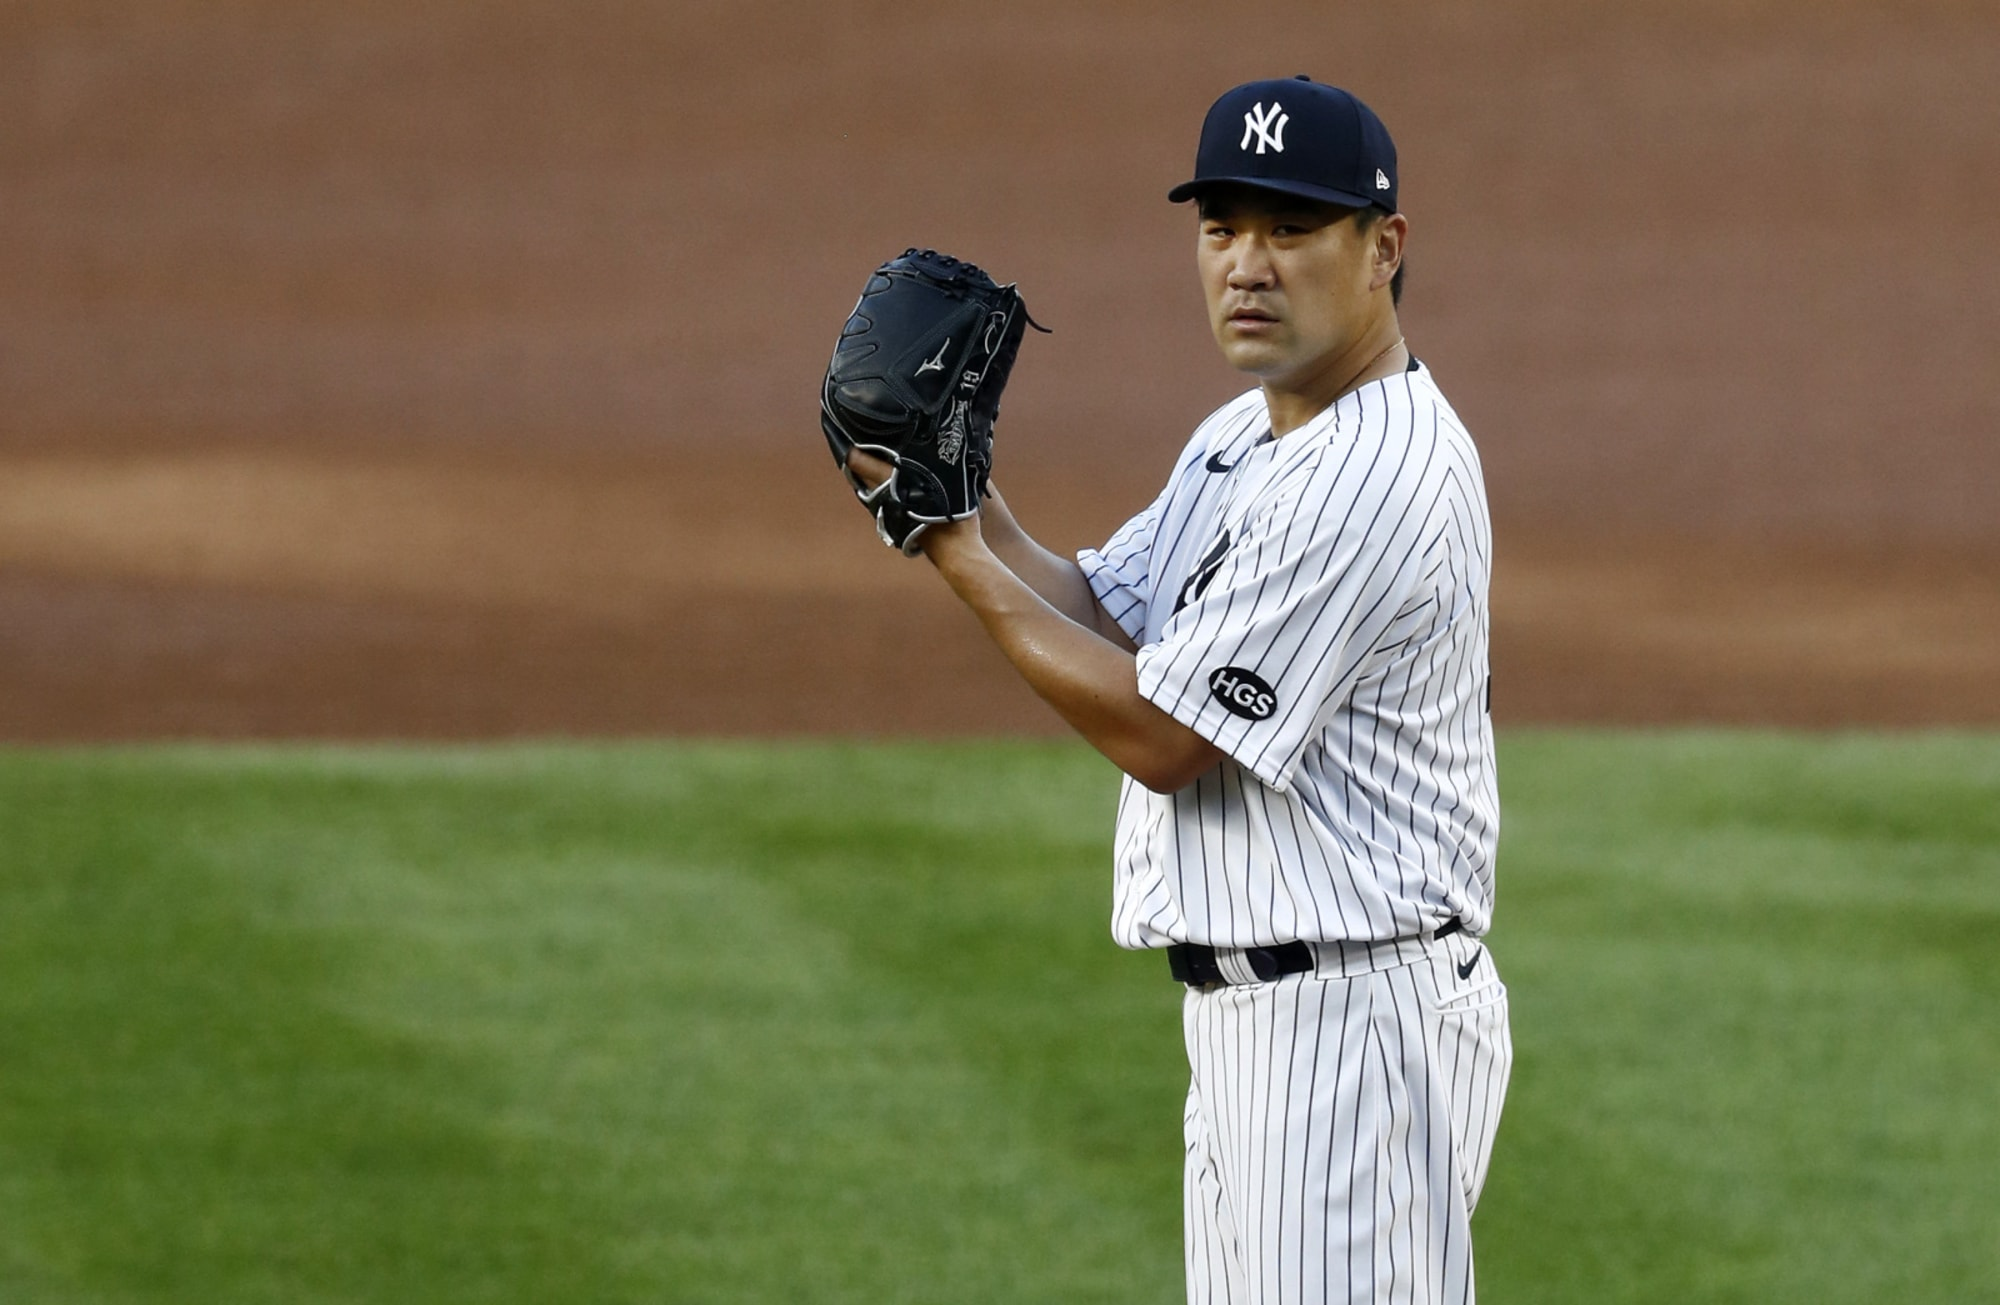 Yankees: Masahiro Tanaka's latest Instagram post is the last thing you'd expect